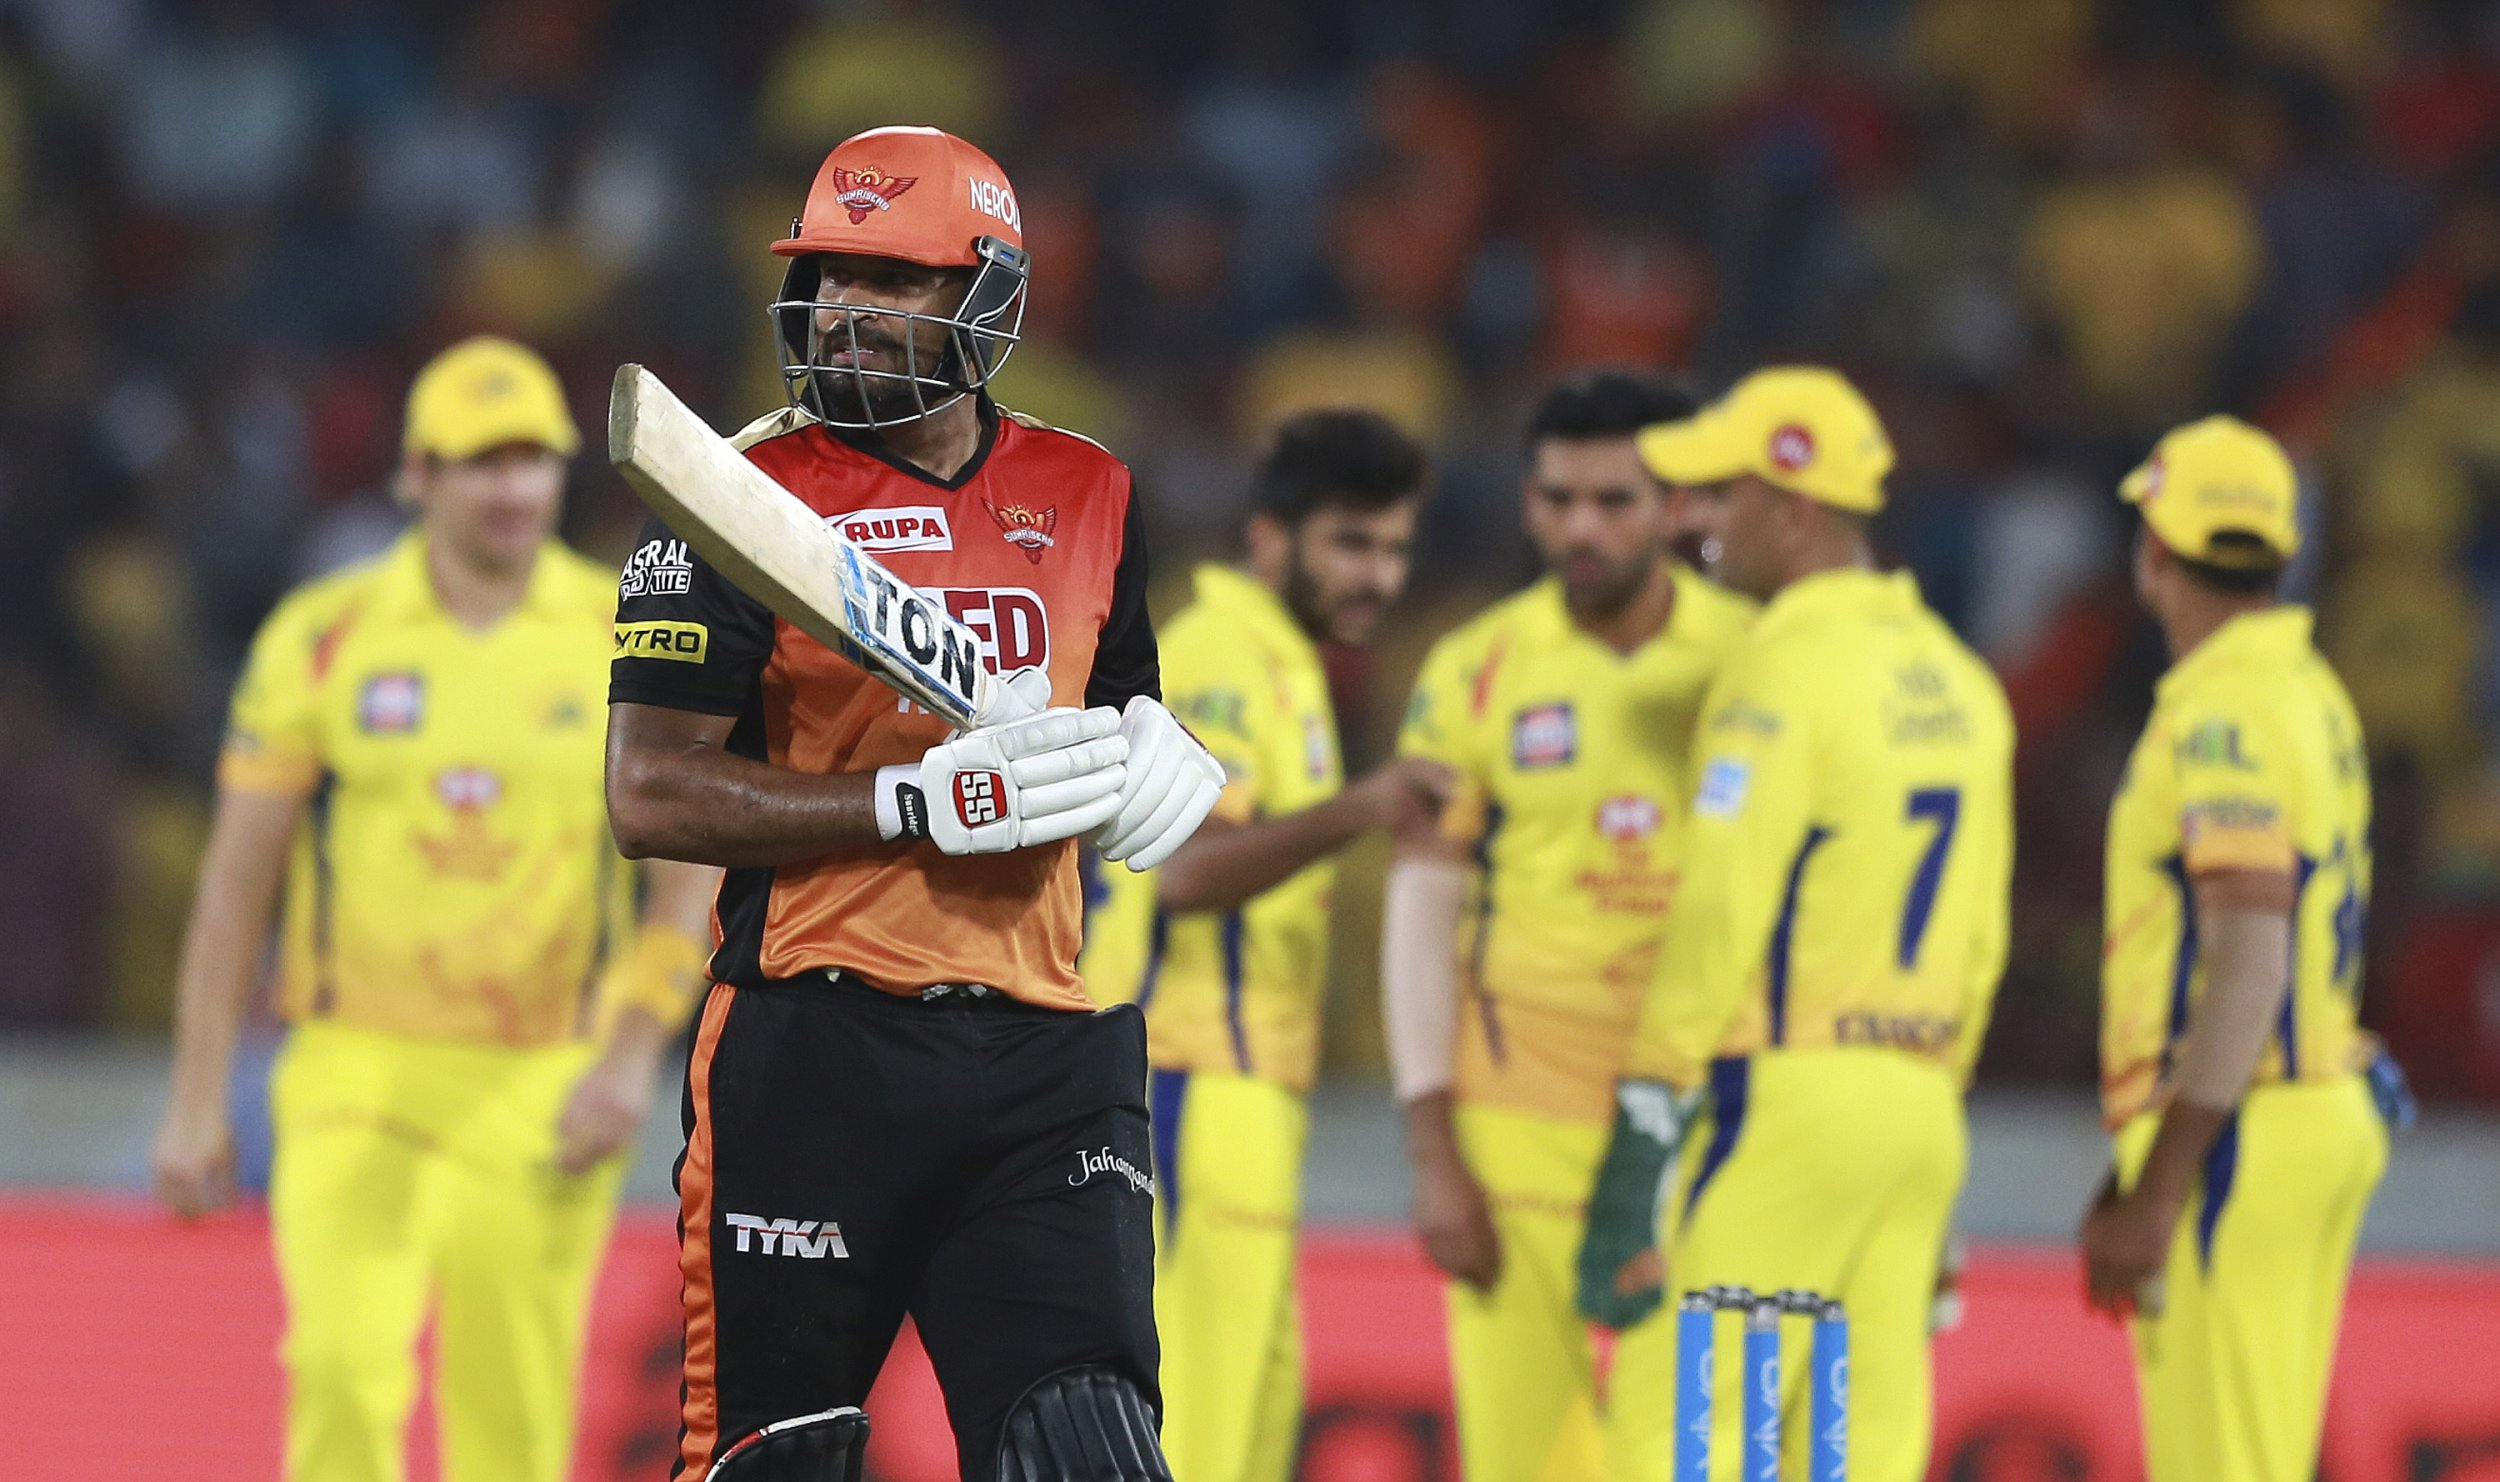 Sunrisers Hyderabad player Yusuf Pathan leaves after being dismissed by Shardul Thakur during VIVO IPL cricket T20 match against Chennai Super Kings in Hyderabad, India, Sunday, April 22, 2018. (AP Photo/Mahesh Kumar A.)